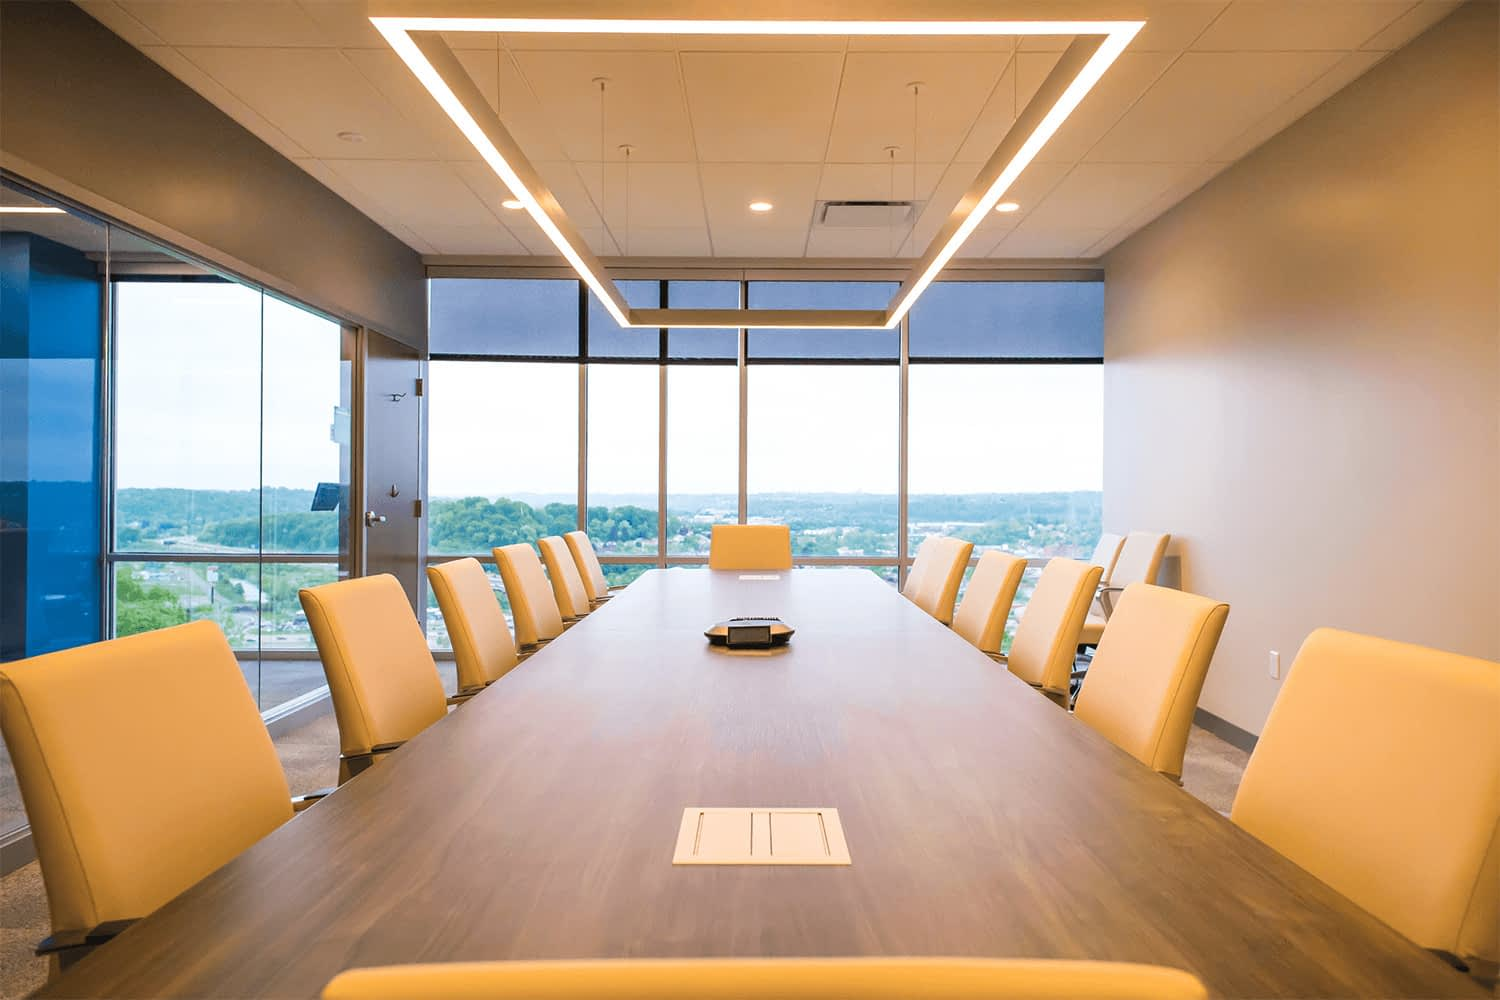 conference room with a large table and chairs, a modern-style square light fixture, and floor-to-ceiling windows